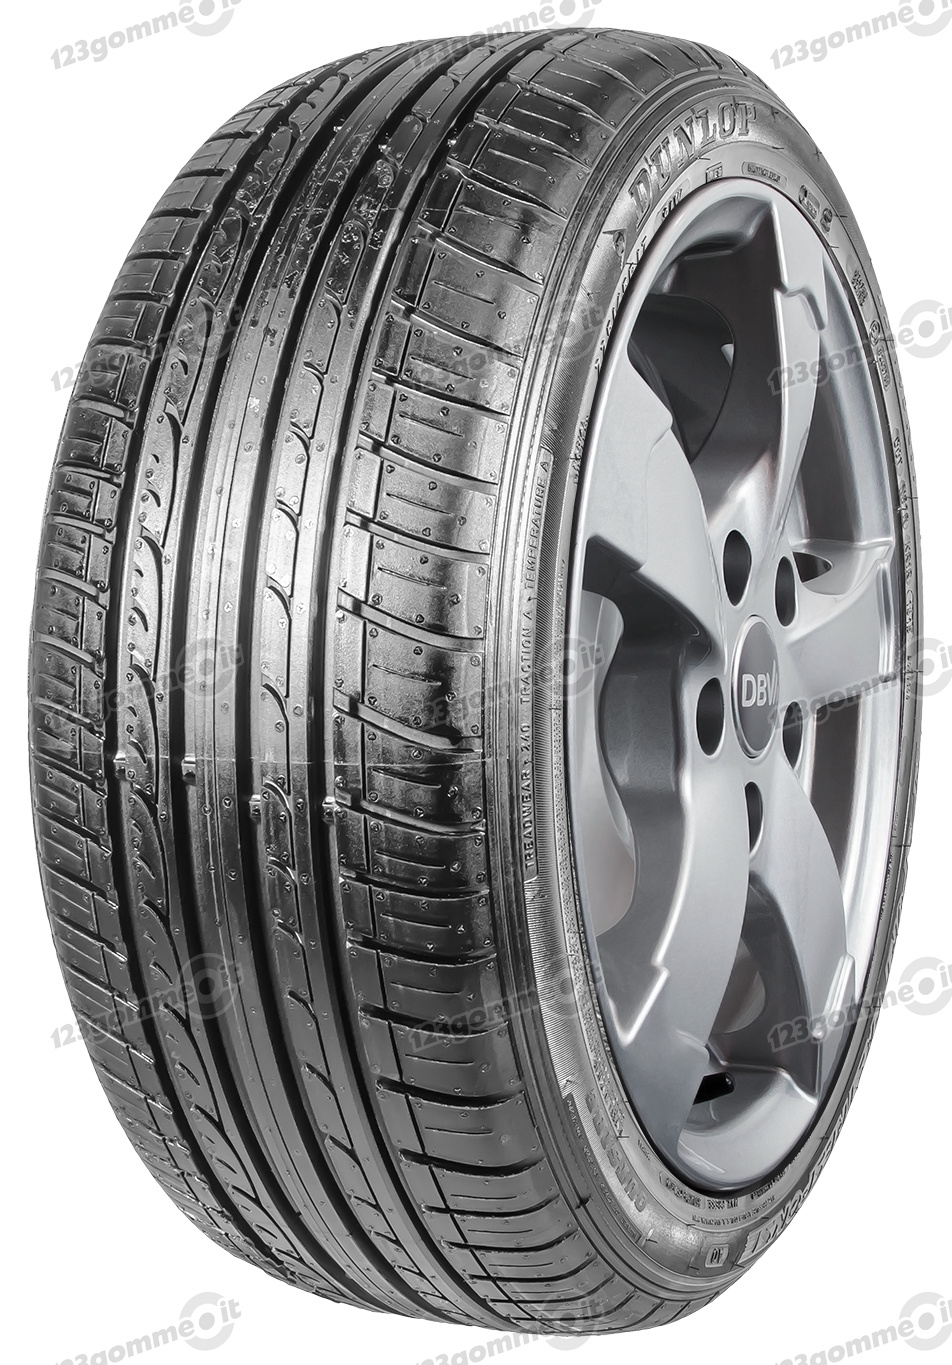 175/65 R15 84H SP Sport Fast Response  SP Sport Fast Response